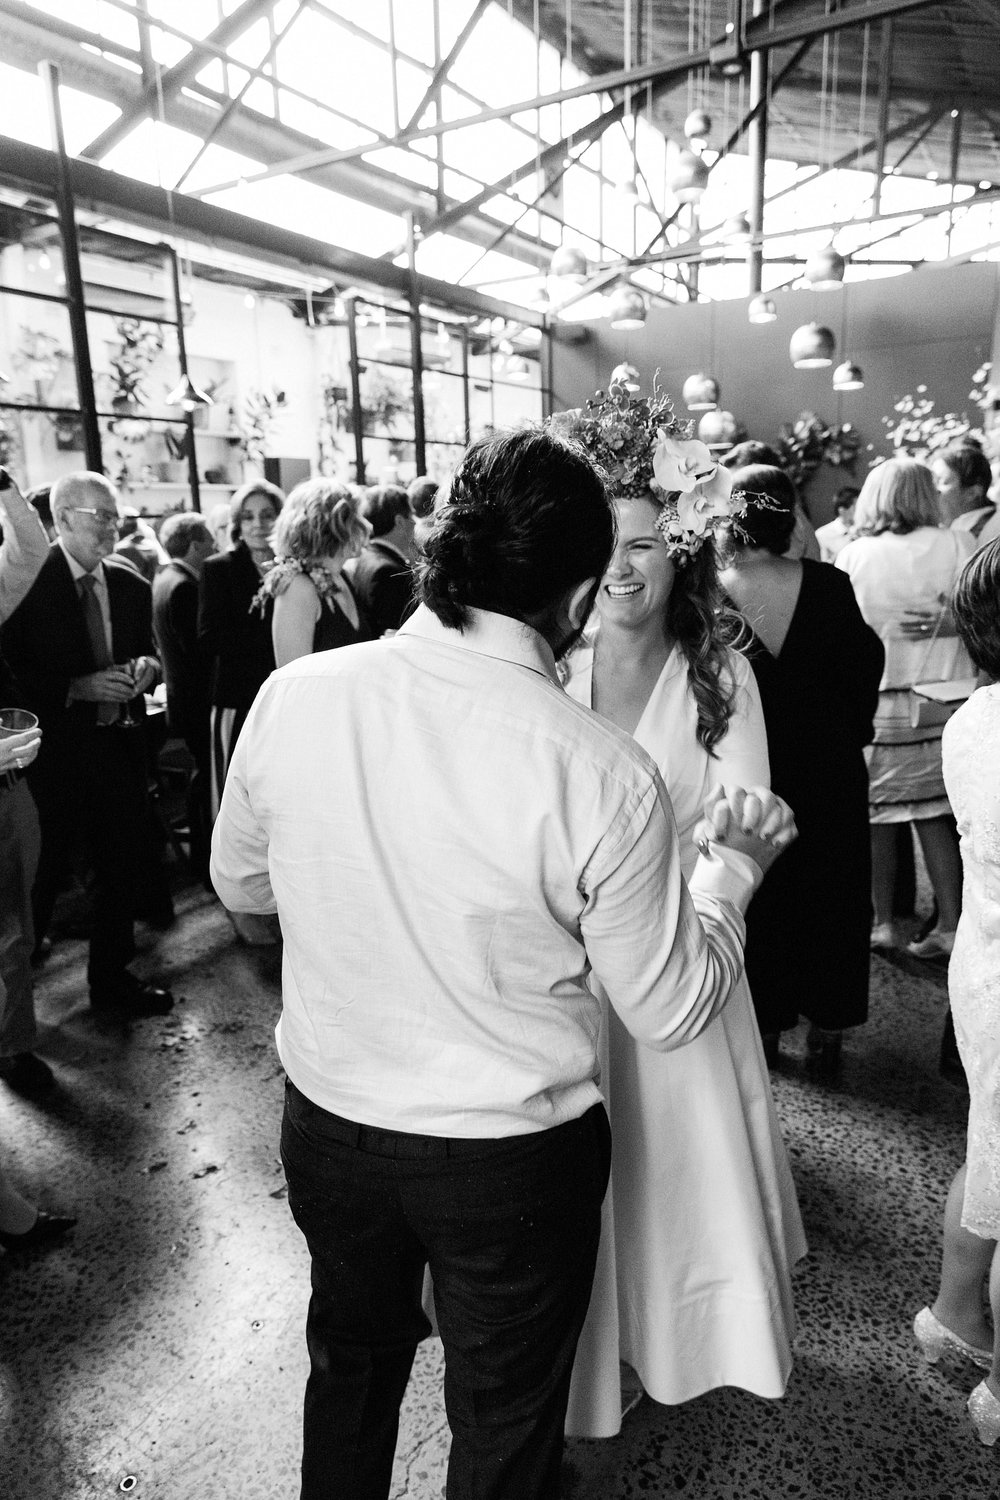 melbourne_wedding_photography_0030-min.jpg